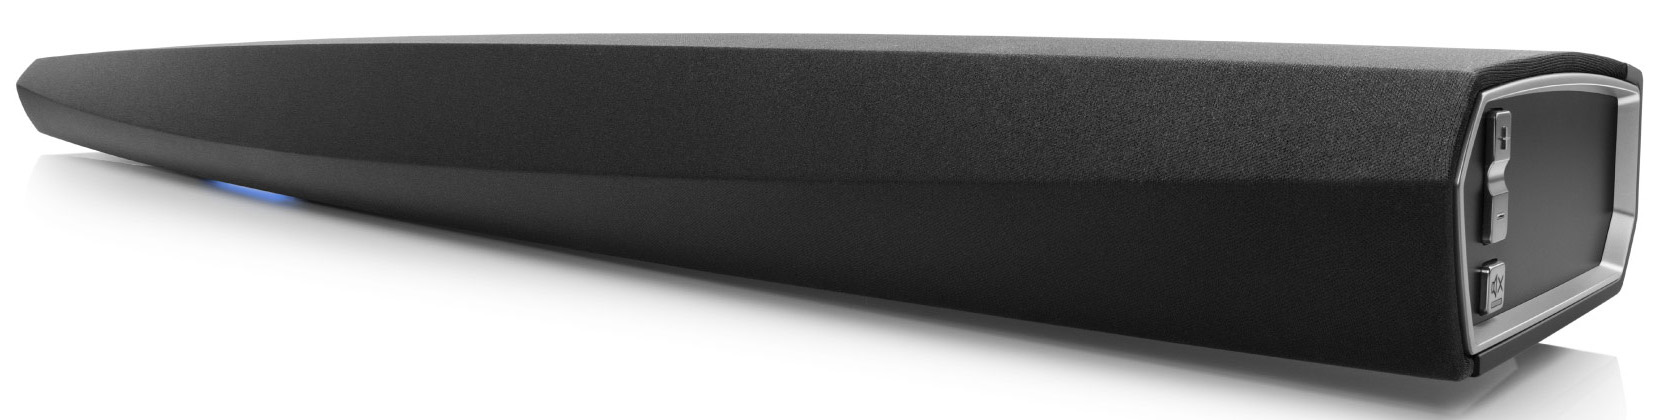 Hi-Fi Sound Bar